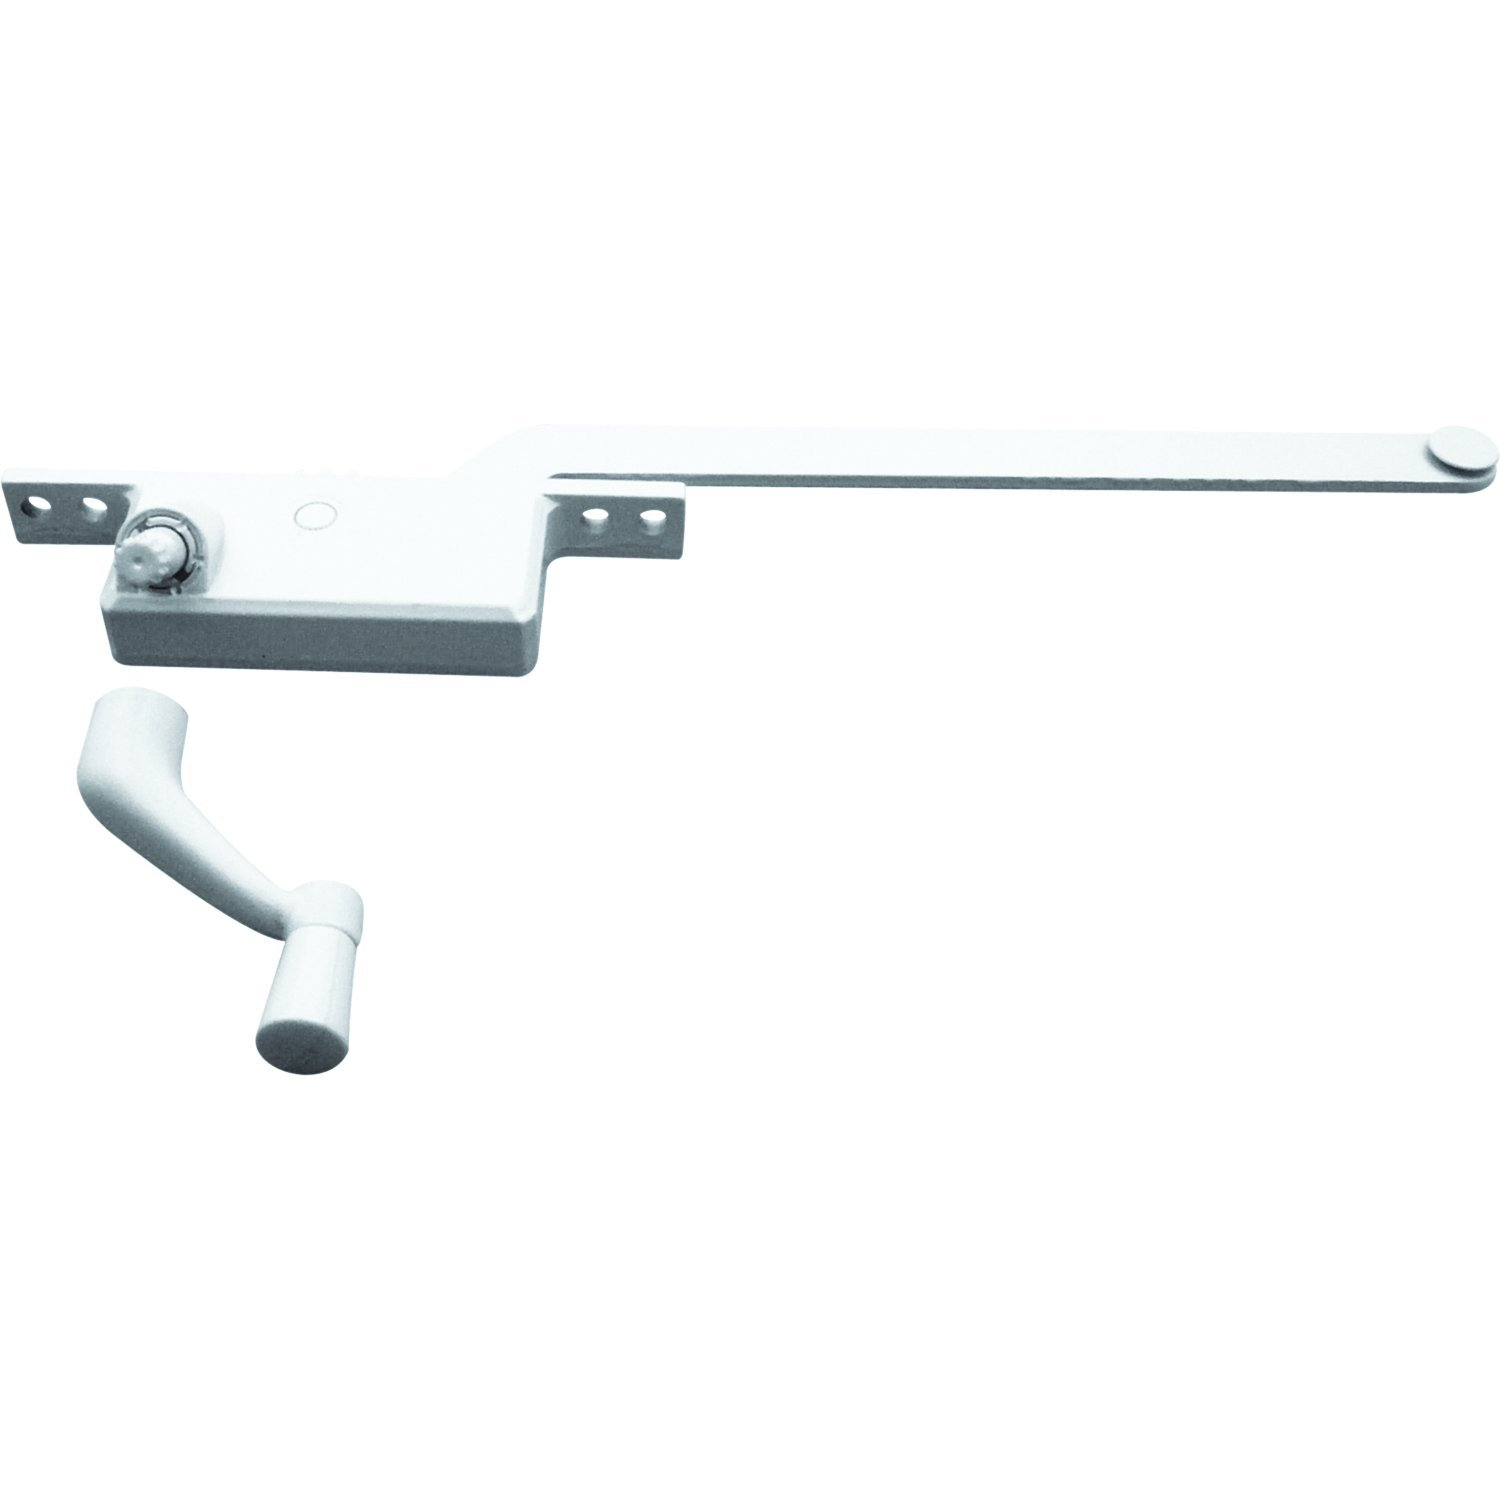 Prime-Line Products H 3710 Casement Operator, 9-Inch Square Type, Left Hand, White